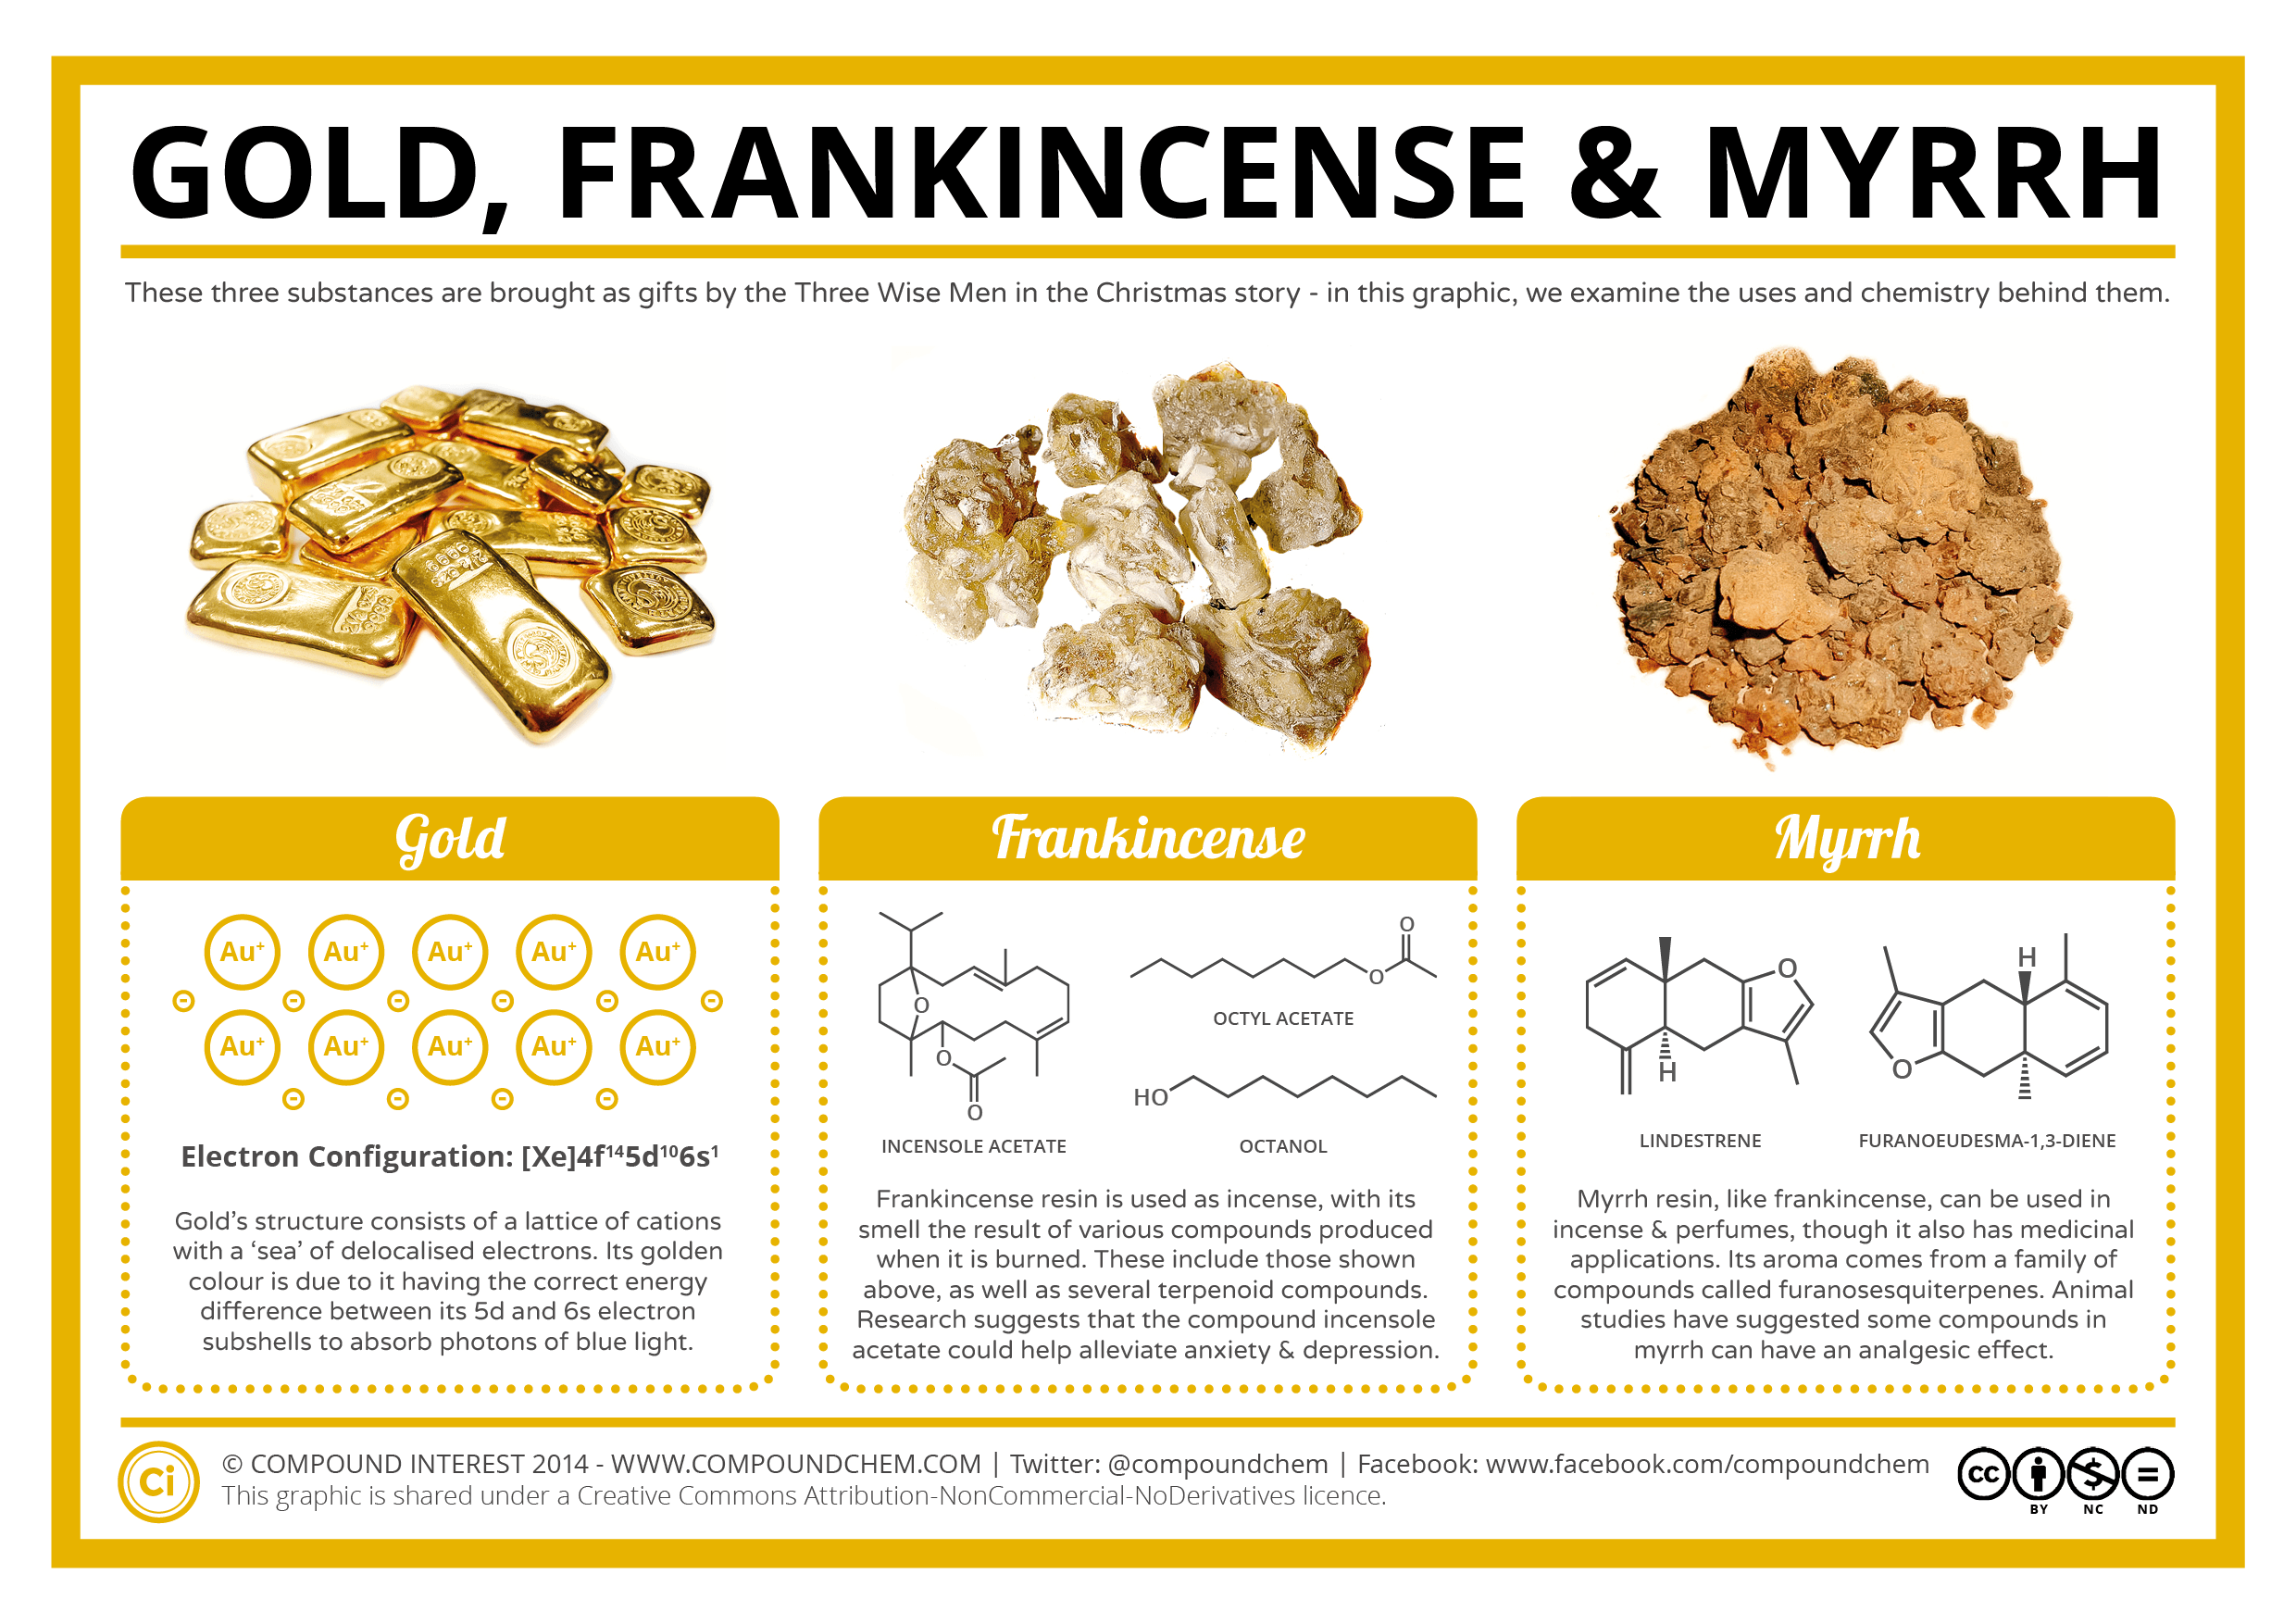 Compound interest the chemistry of gold frankincense myrrh the chemistry of gold frankincense myrrh biocorpaavc